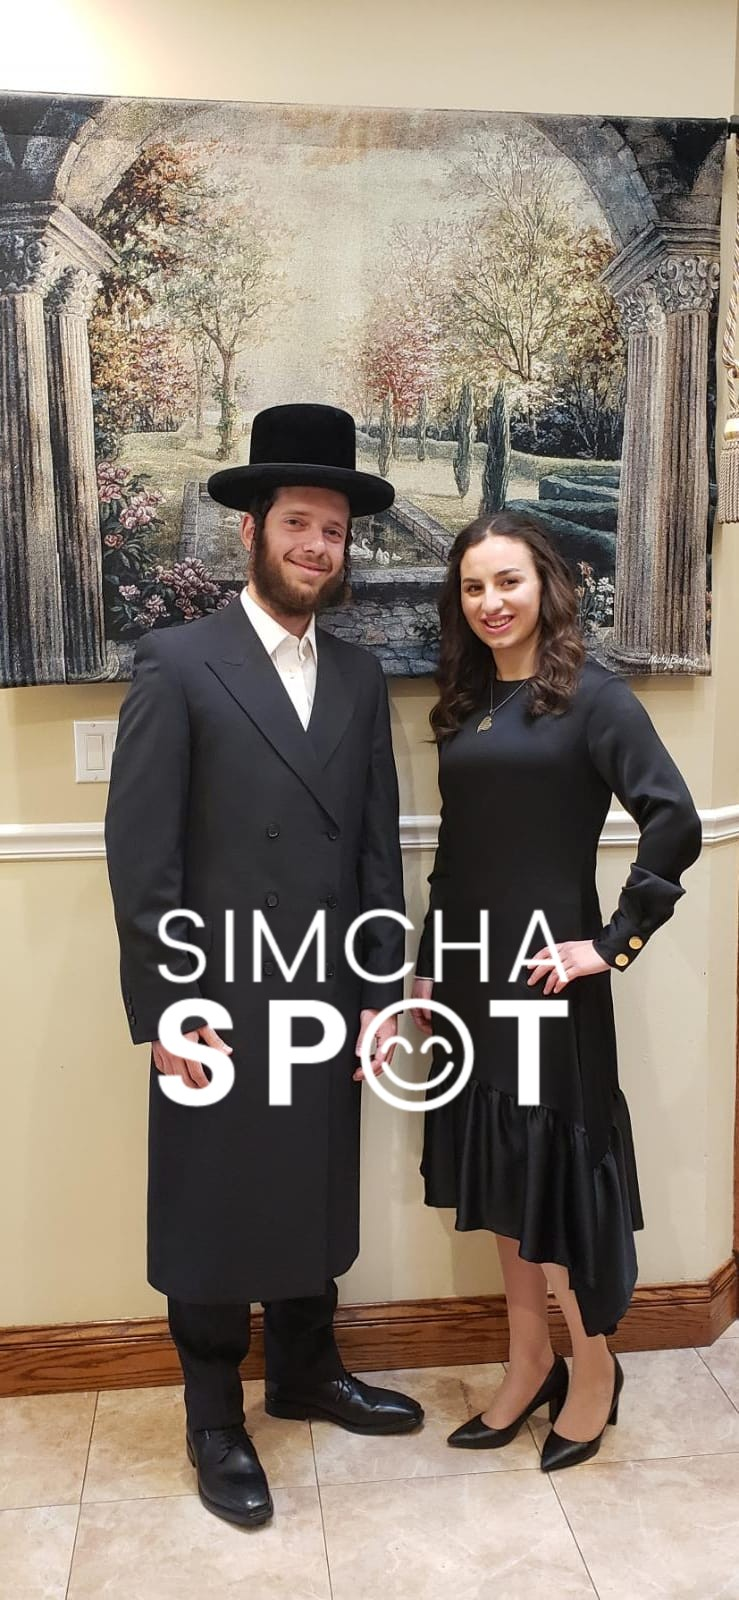 Engagement Of Efroim Rechiman Monsey And Freida Koenig Spring Valley Simcha Spot Check simchaspot.com with our free review tool and find out if simchaspot.com is legit and reliable. freida koenig spring valley simcha spot